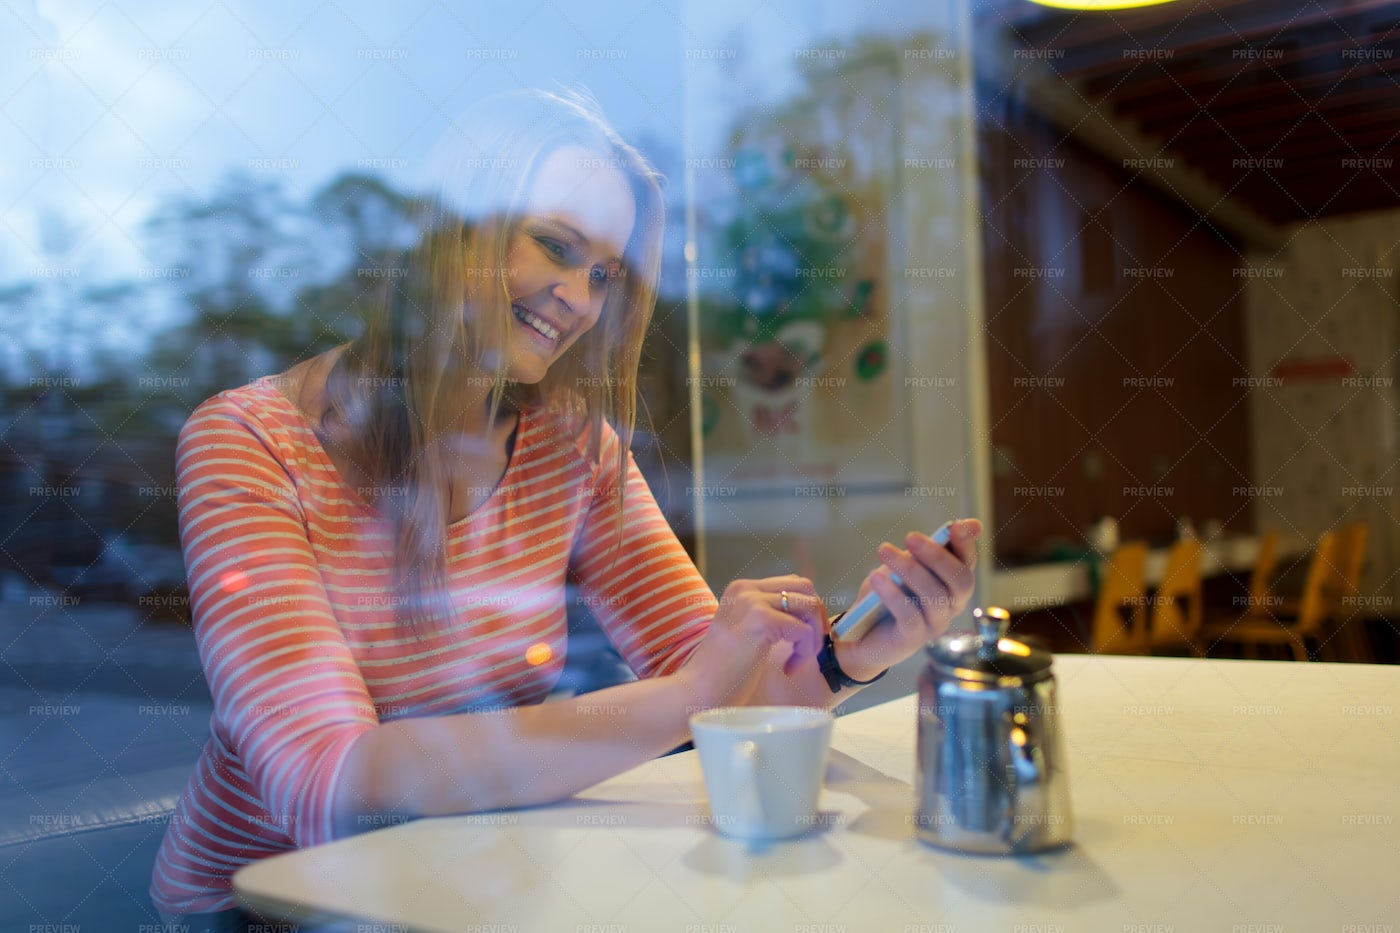 Woman Using A Mobile Phone In Cafe: Stock Photos